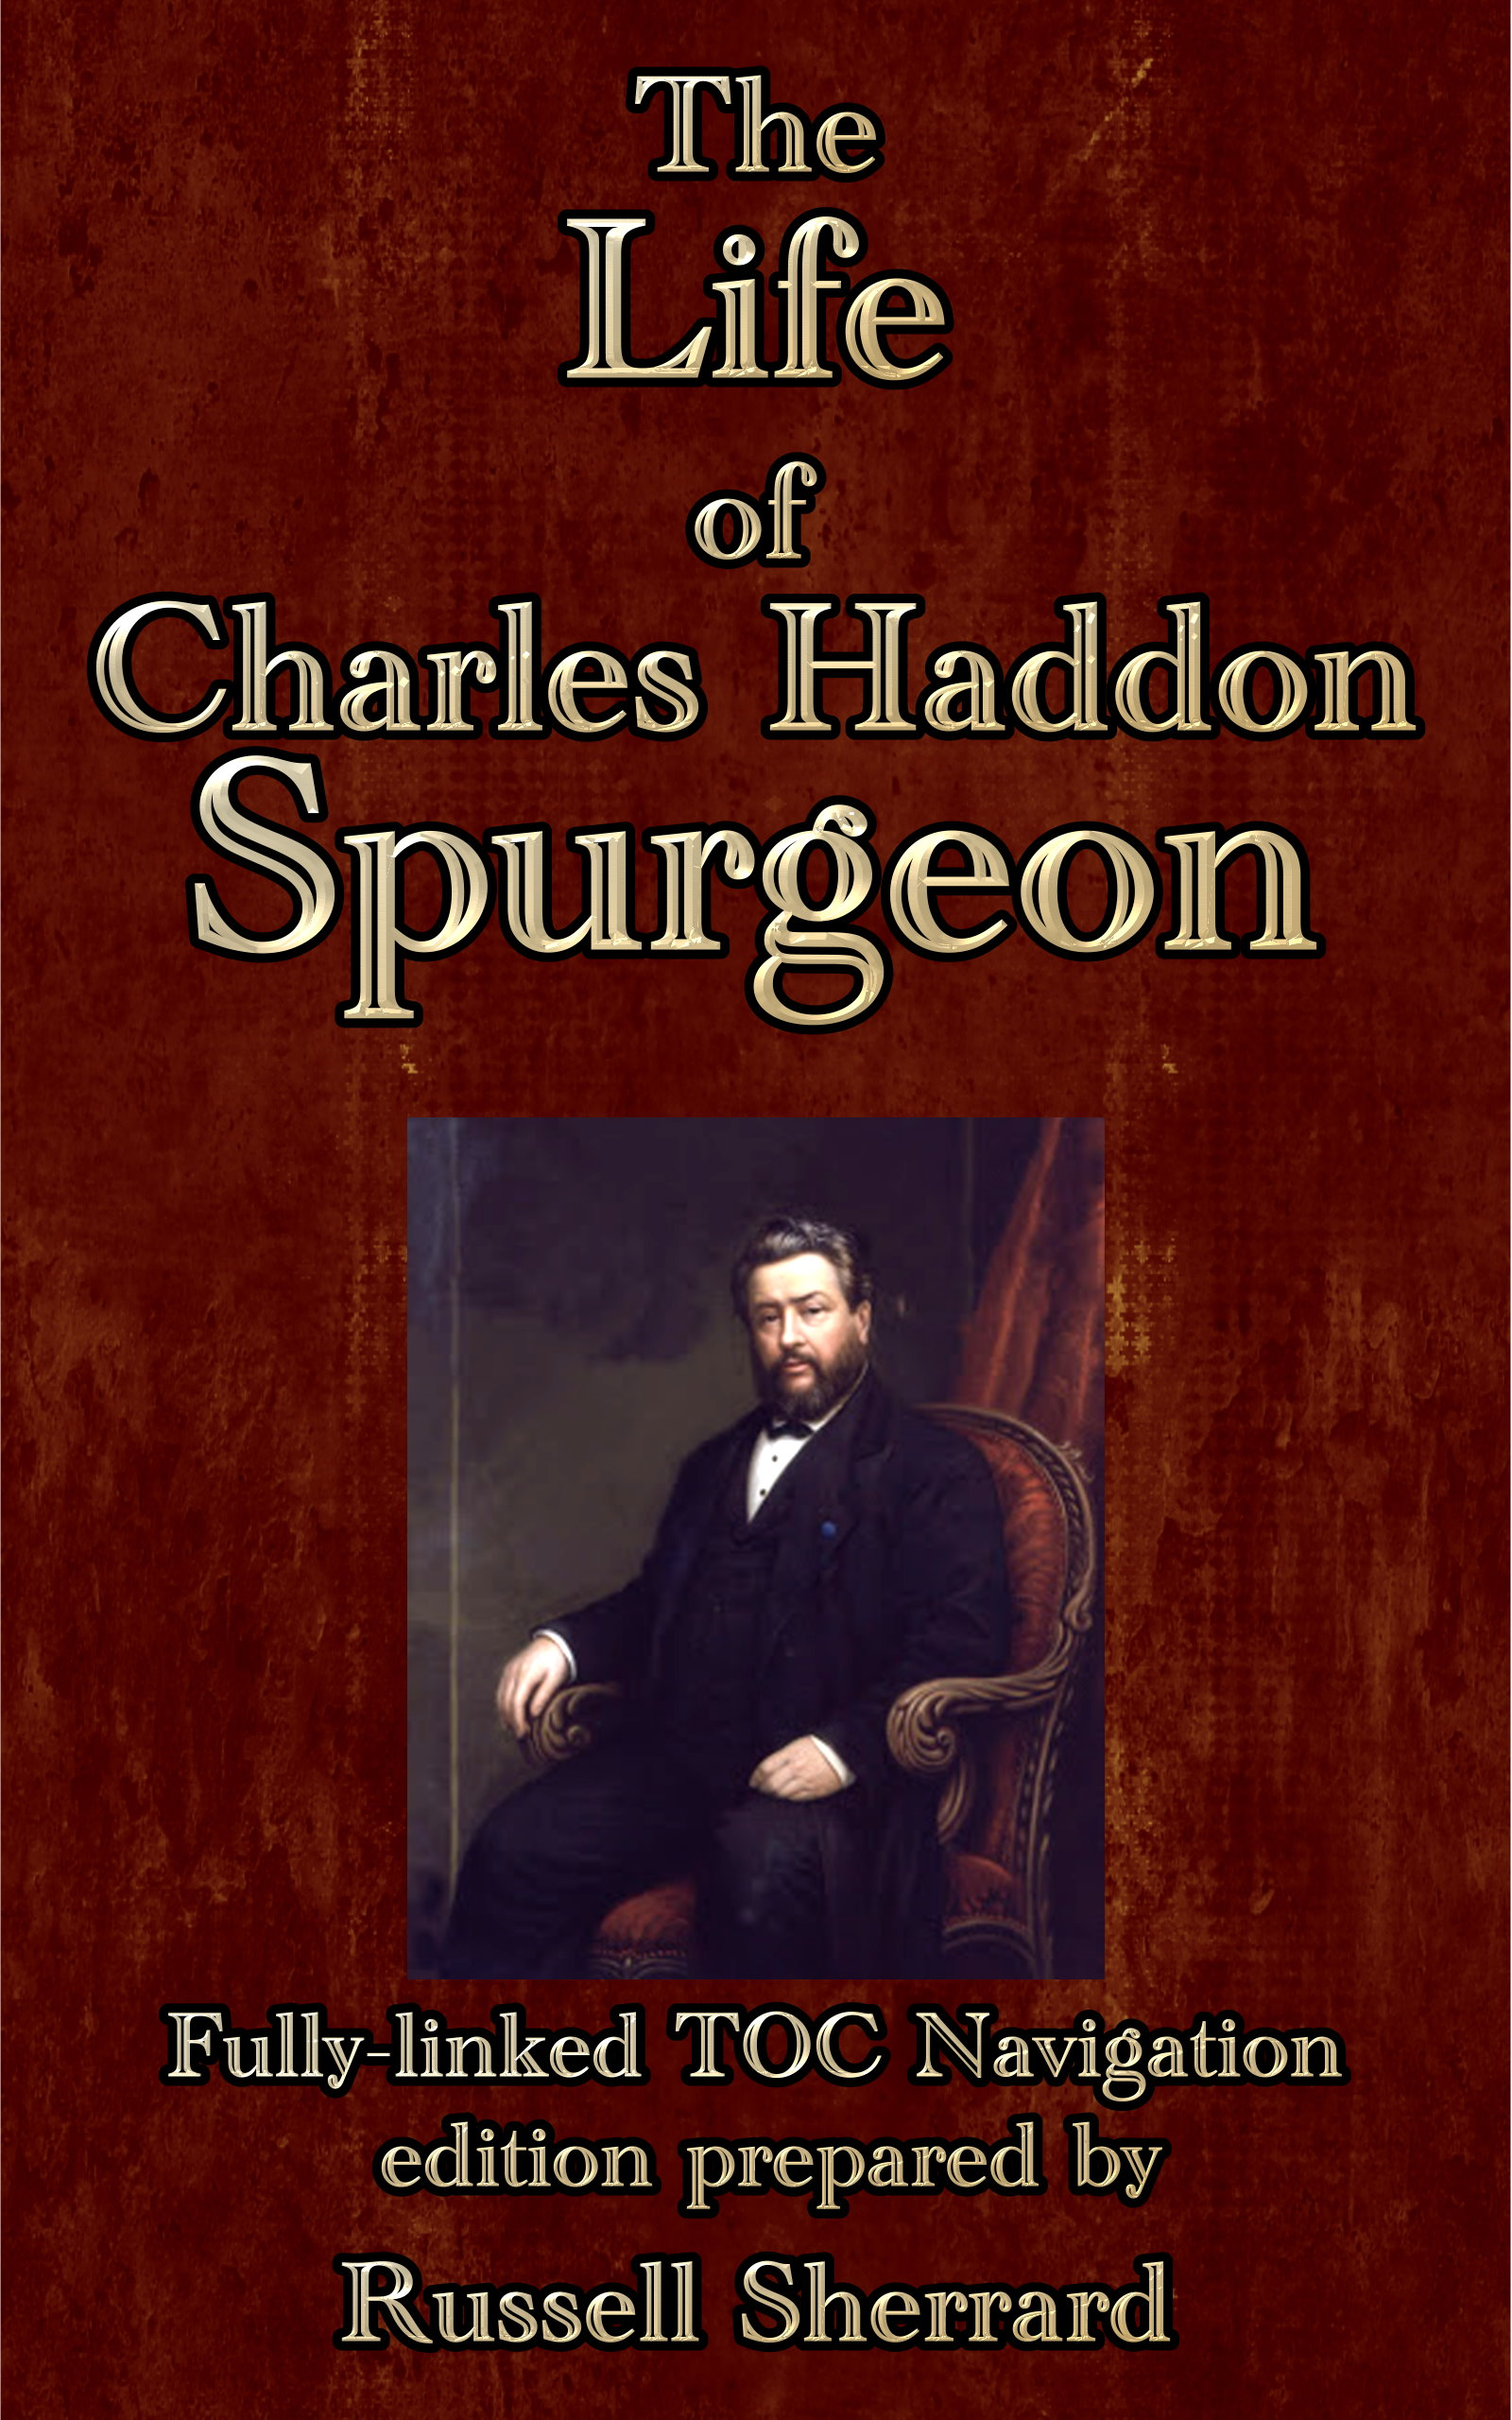 Russell Sherrard  Russell H. Conwell - The Life of Charles Haddon Spurgeon